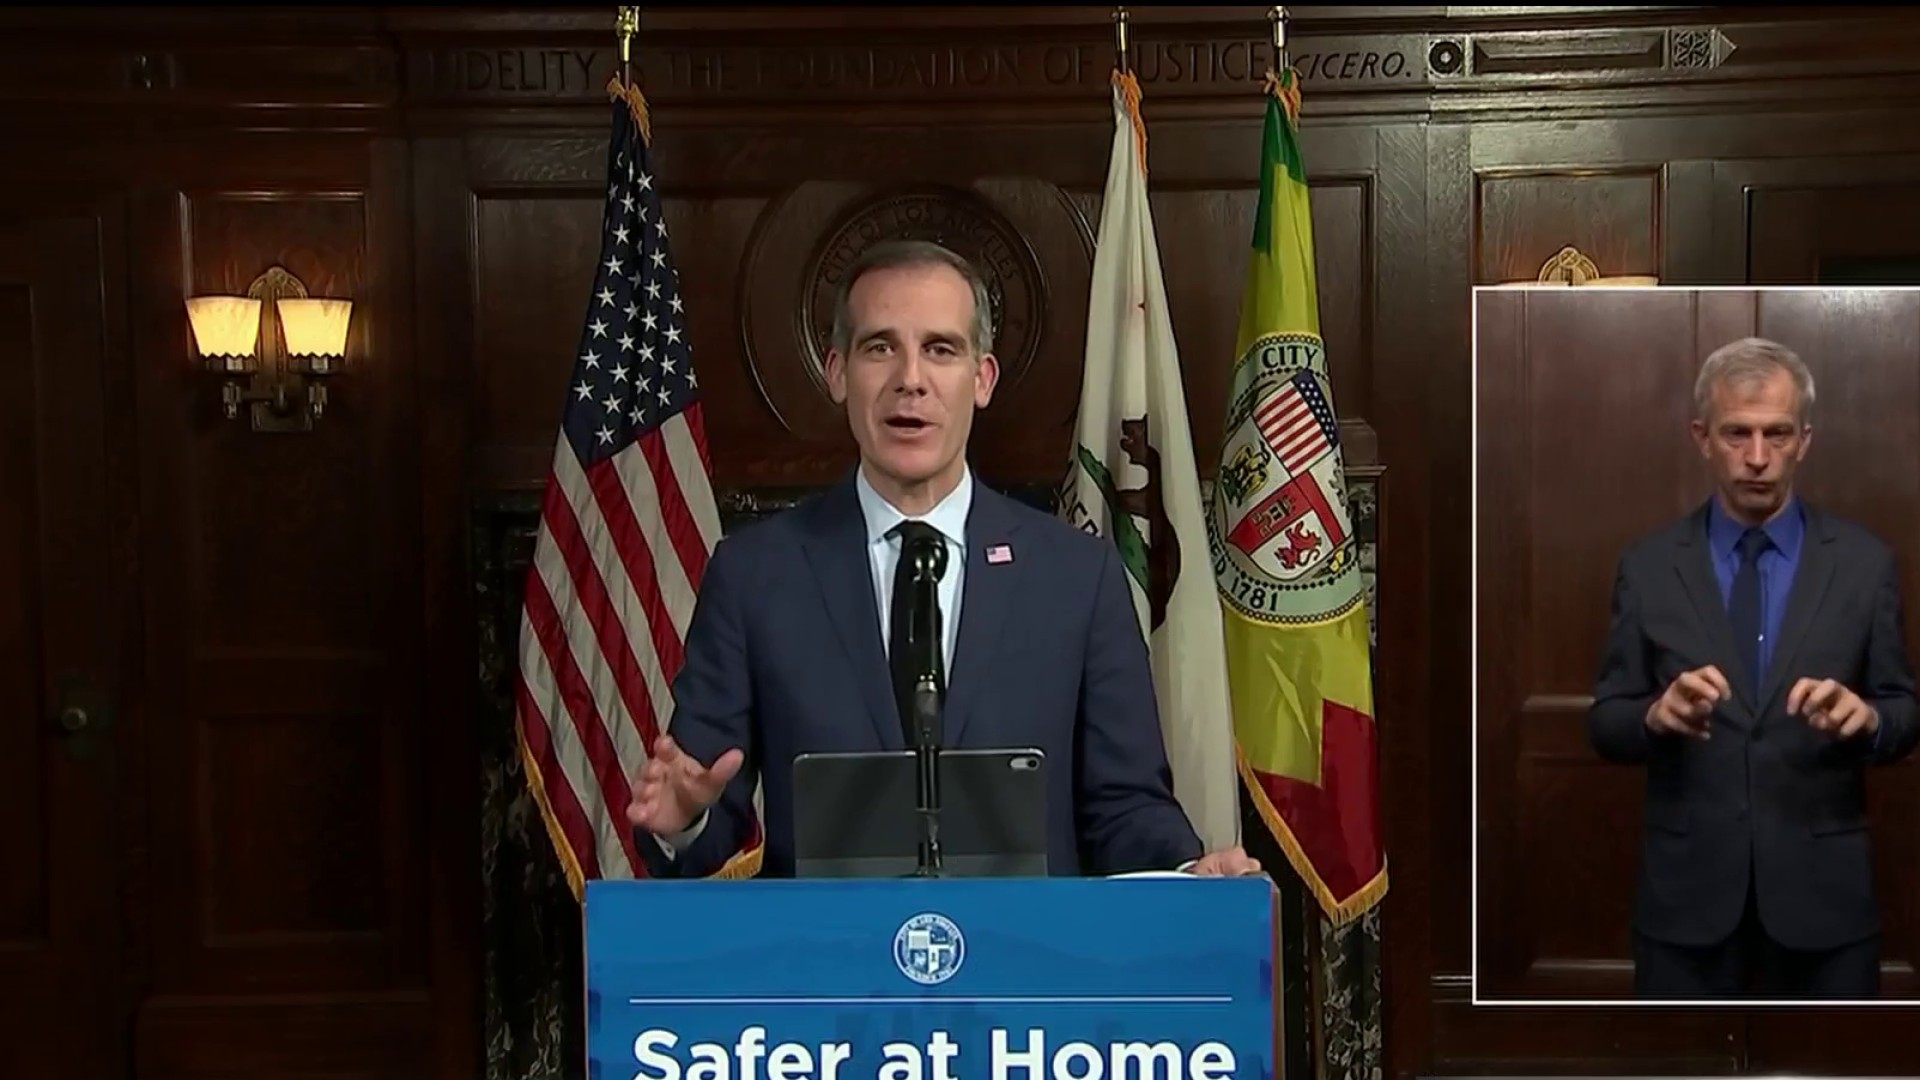 Mayor Garcetti Makes Statement on George Floyd's Death During Briefing